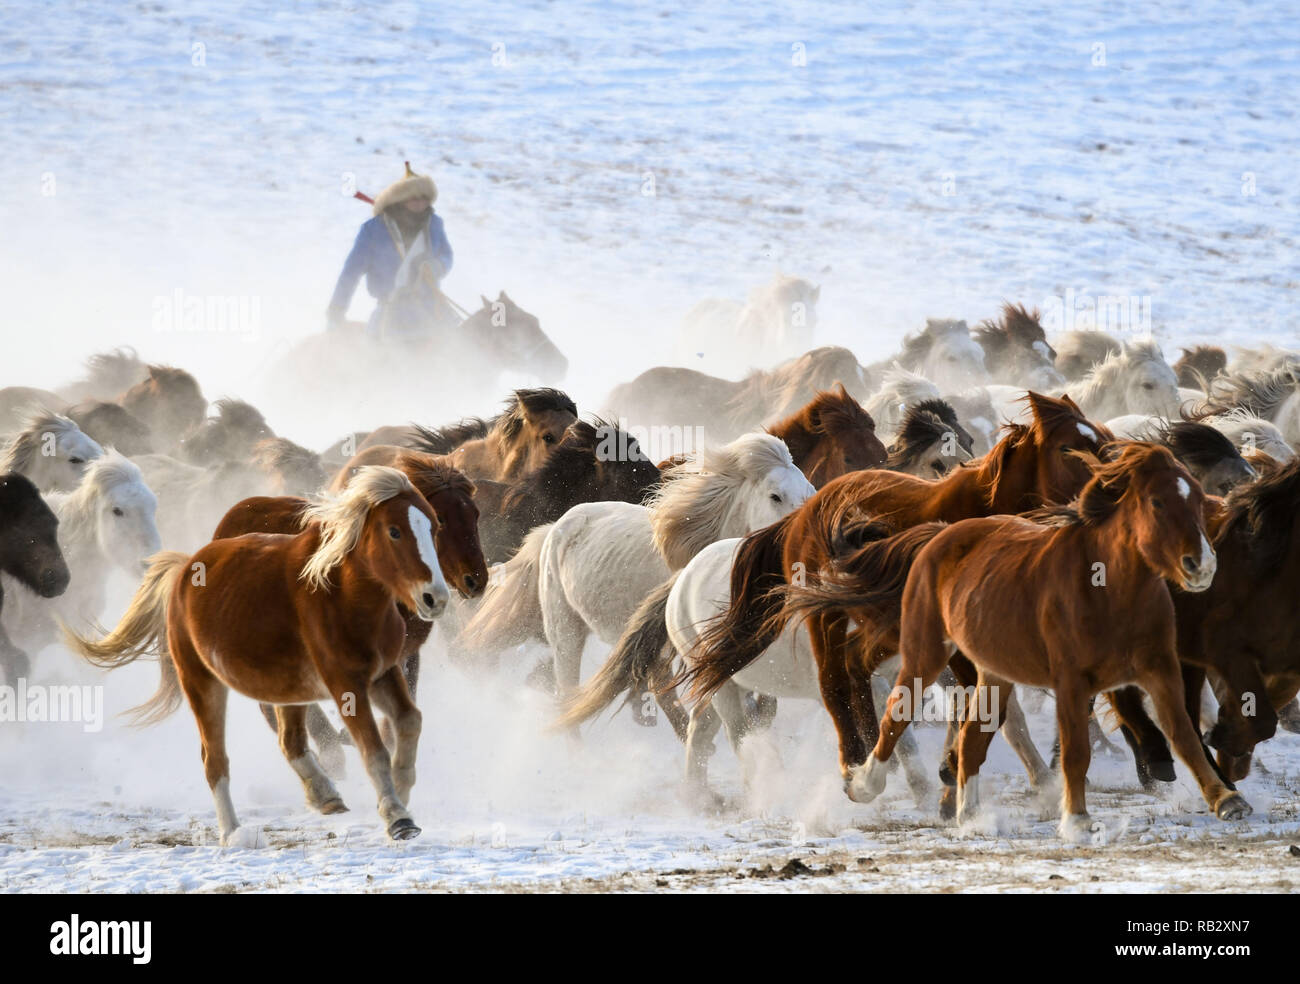 Chifeng, China's Inner Mongolia Autonomous Region. 6th Jan, 2019. A herdsman drives horses on the snow-covered grassland in Hexigten Banner of Chifeng City, north China's Inner Mongolia Autonomous Region, Jan. 6, 2019. Inner Mongolia greets a peak tourism season in winter recently. Credit: Peng Yuan/Xinhua/Alamy Live News - Stock Image